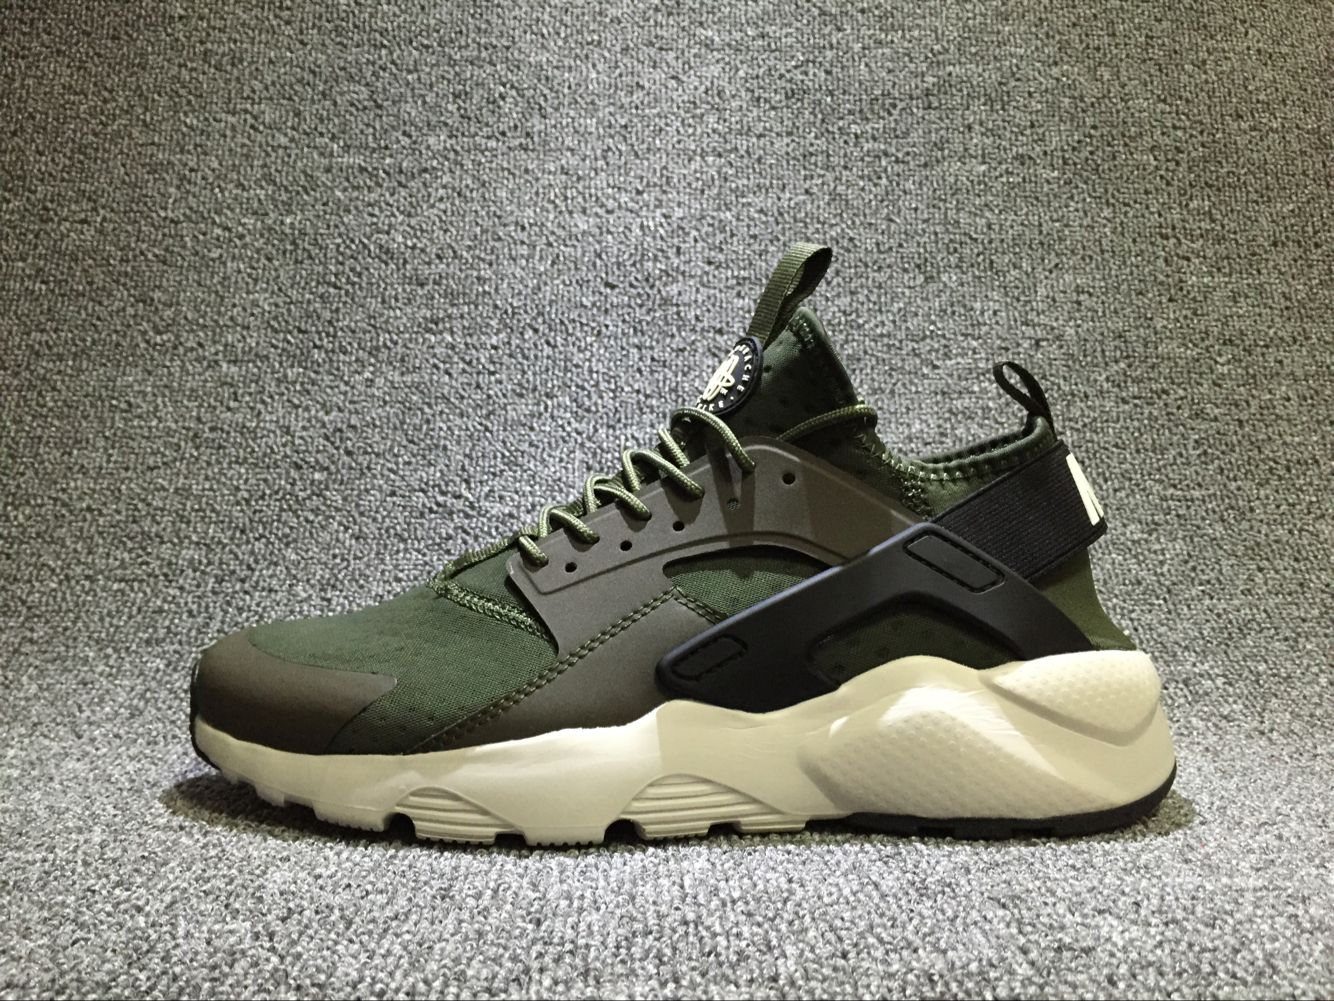 fb75867109e0 Official Nike Air Huarache Army Green White 819685-300 Mens Running Shoe